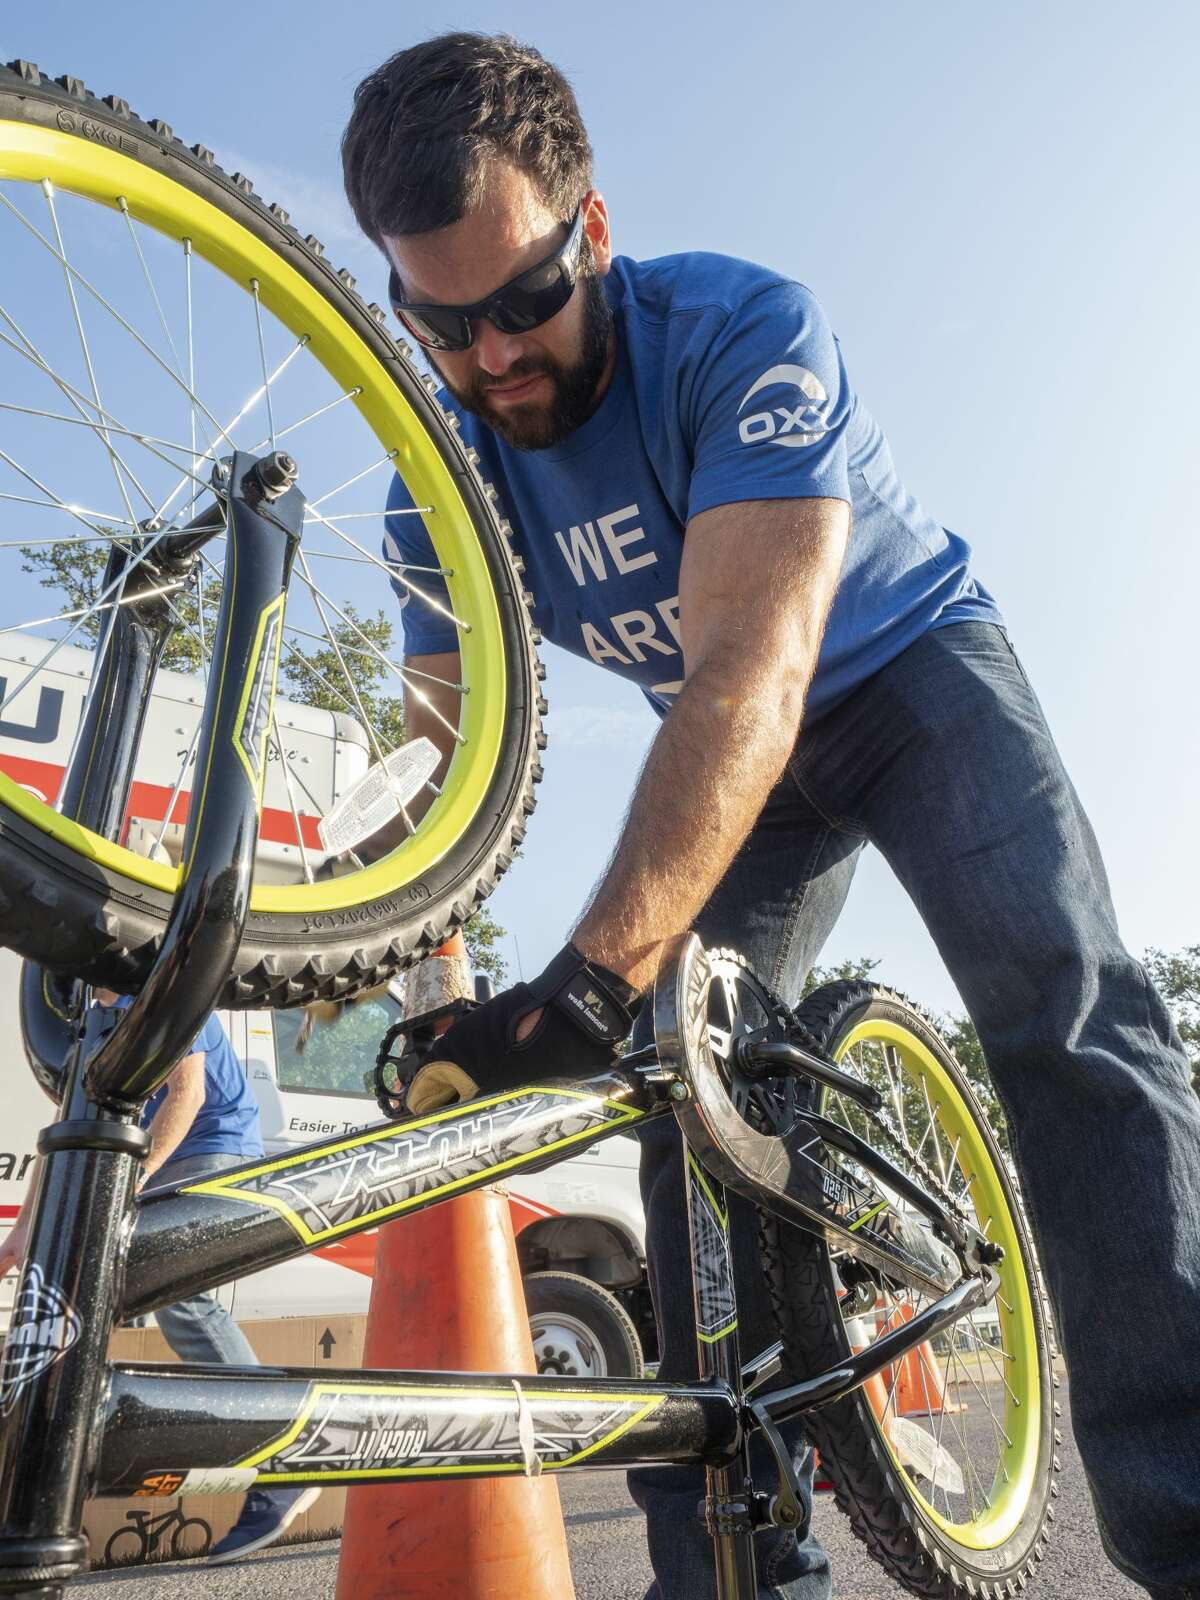 Jason Zapalac and other Occidental Petroleum employees partner with Wish for Wheels on Aug. 29 to build bikes for area youth.